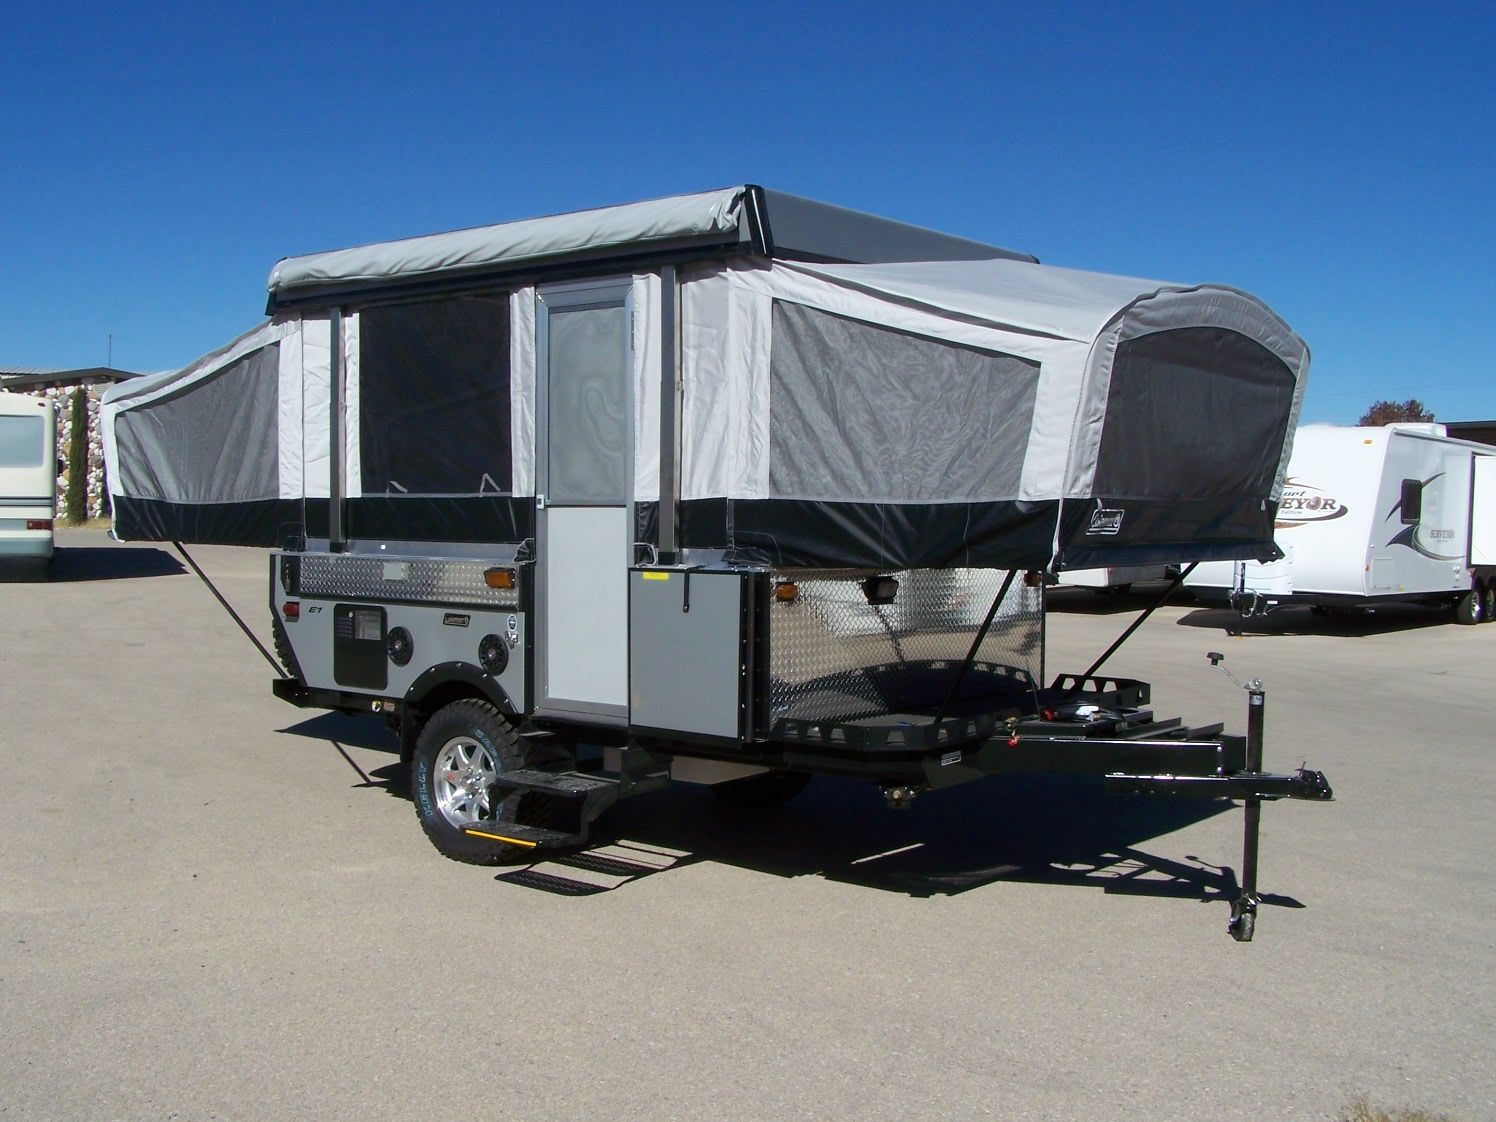 Fleetwood E1 Offroad Popup Tent Trailer Pop Up Camper Trailer